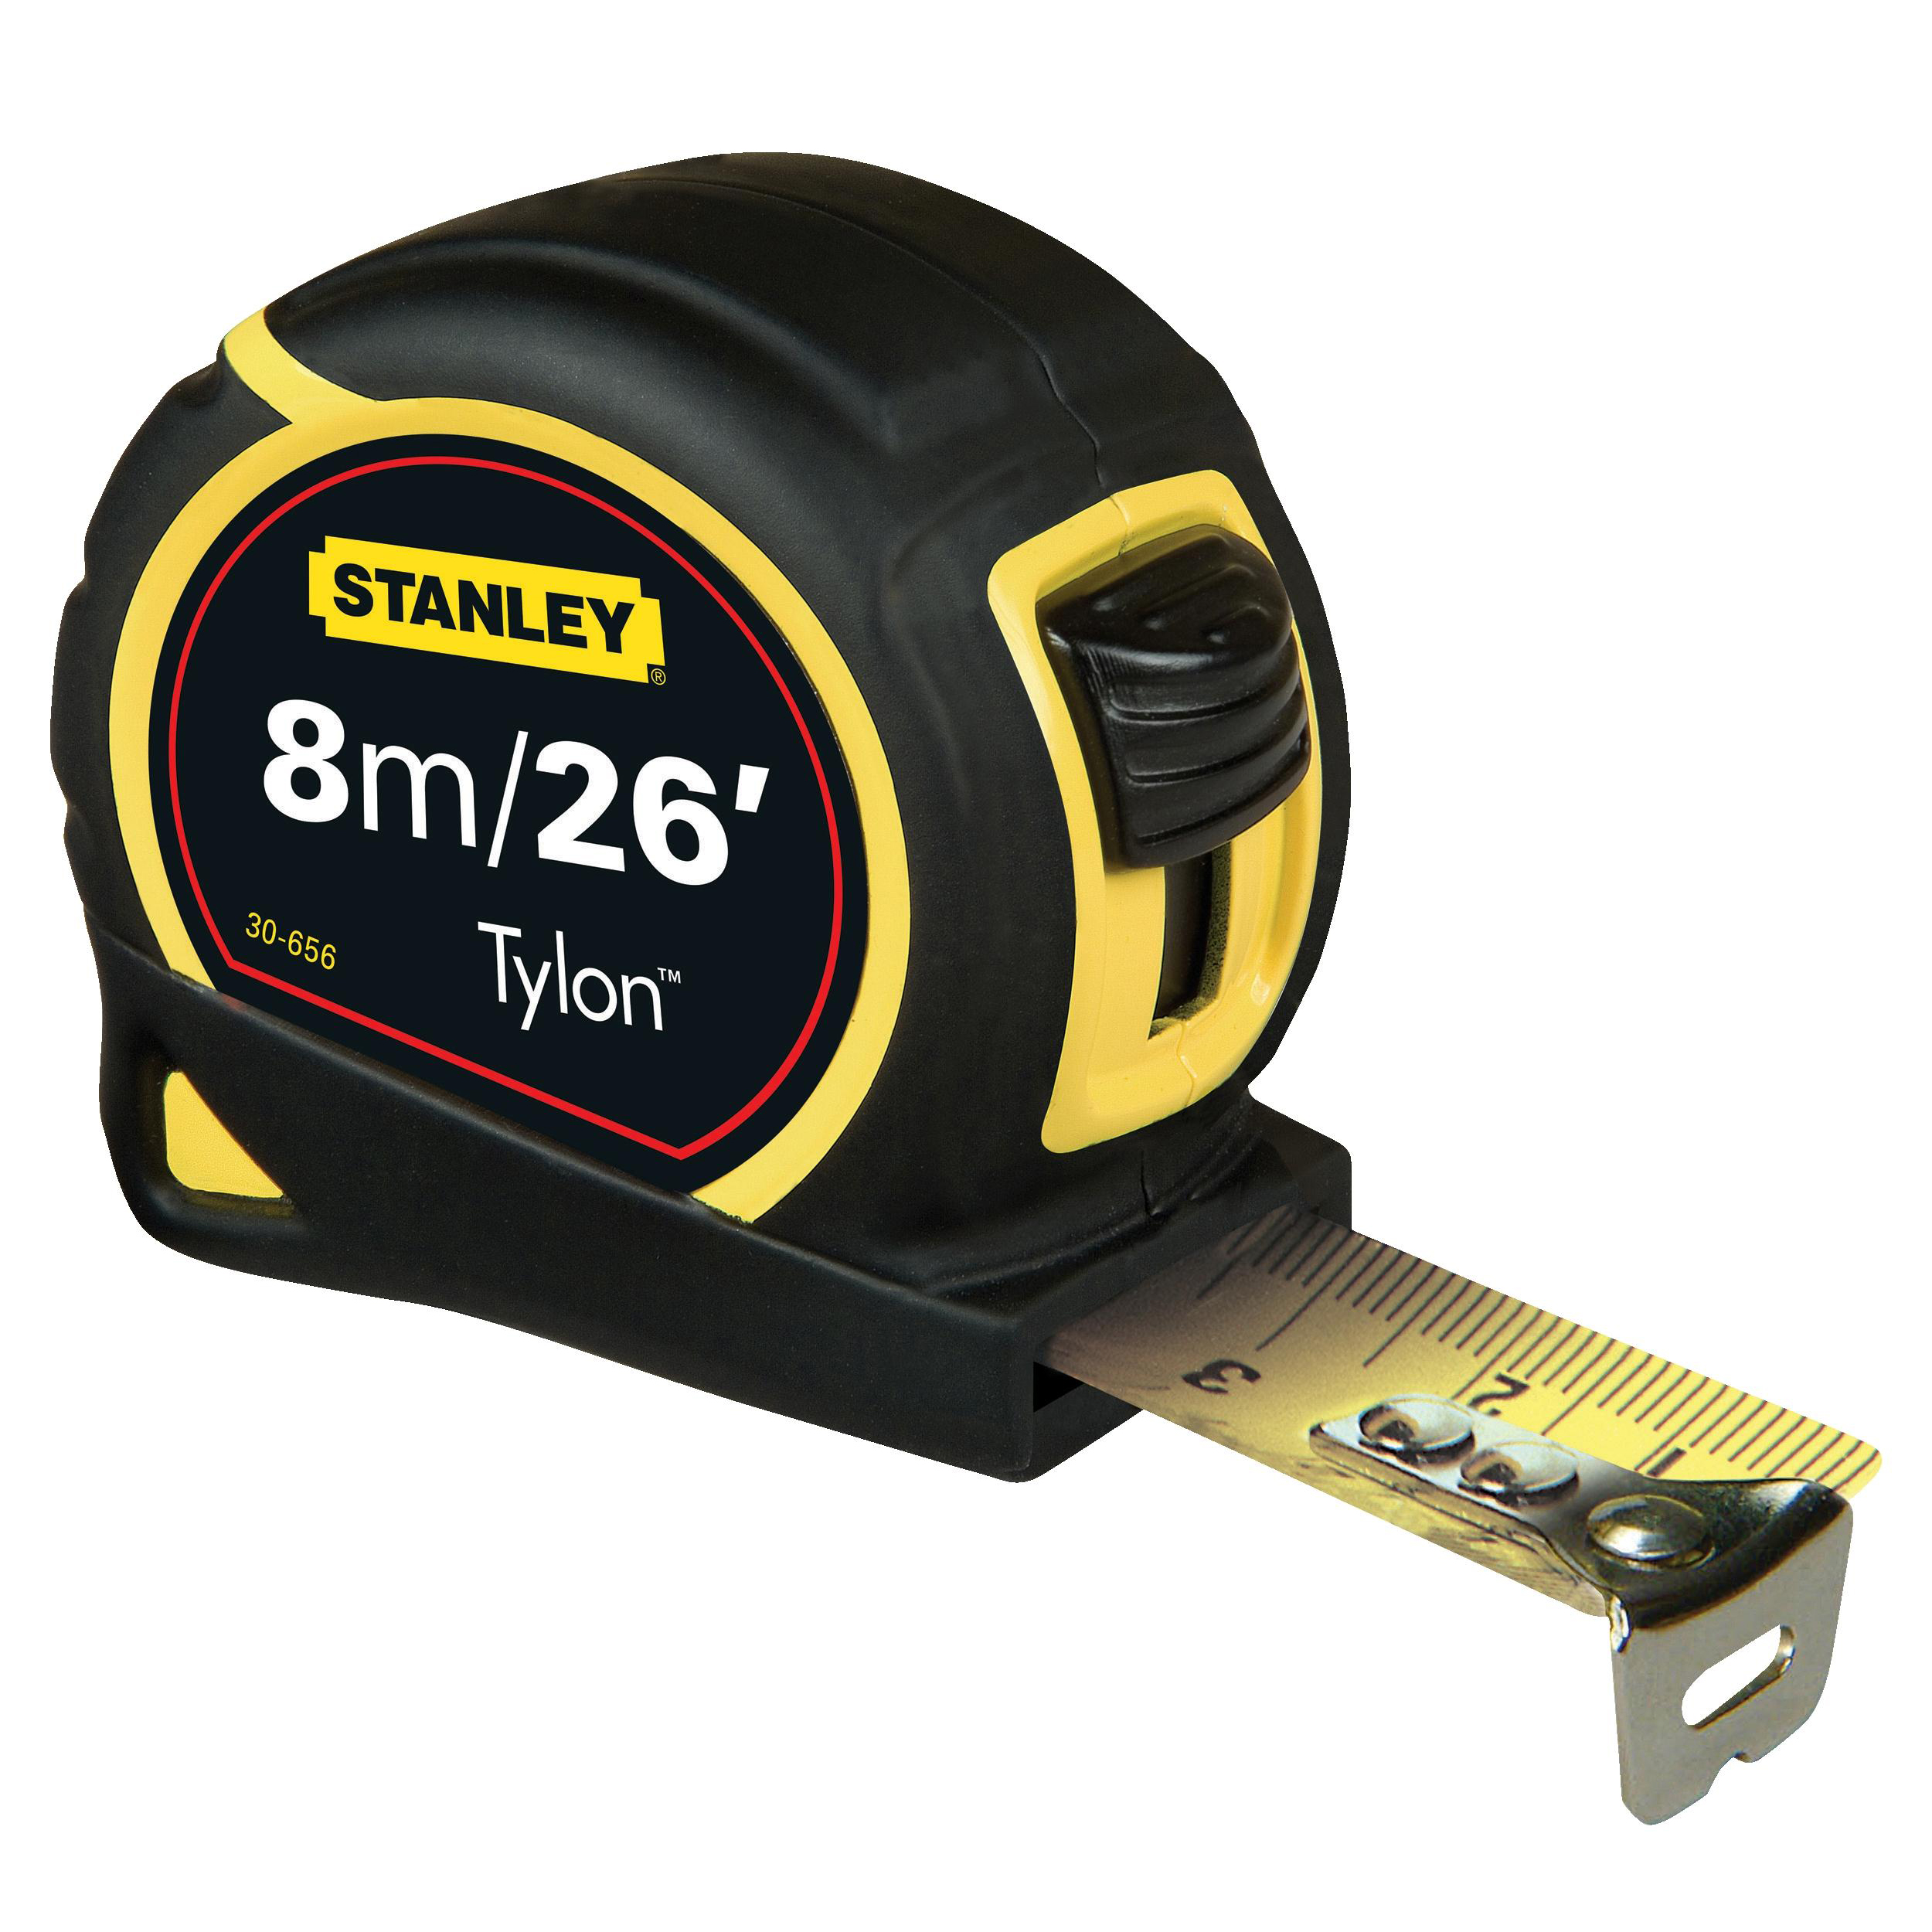 Stanley Tape Measure Pocket 8m/26 Feet Tylon Ref 0-30-656